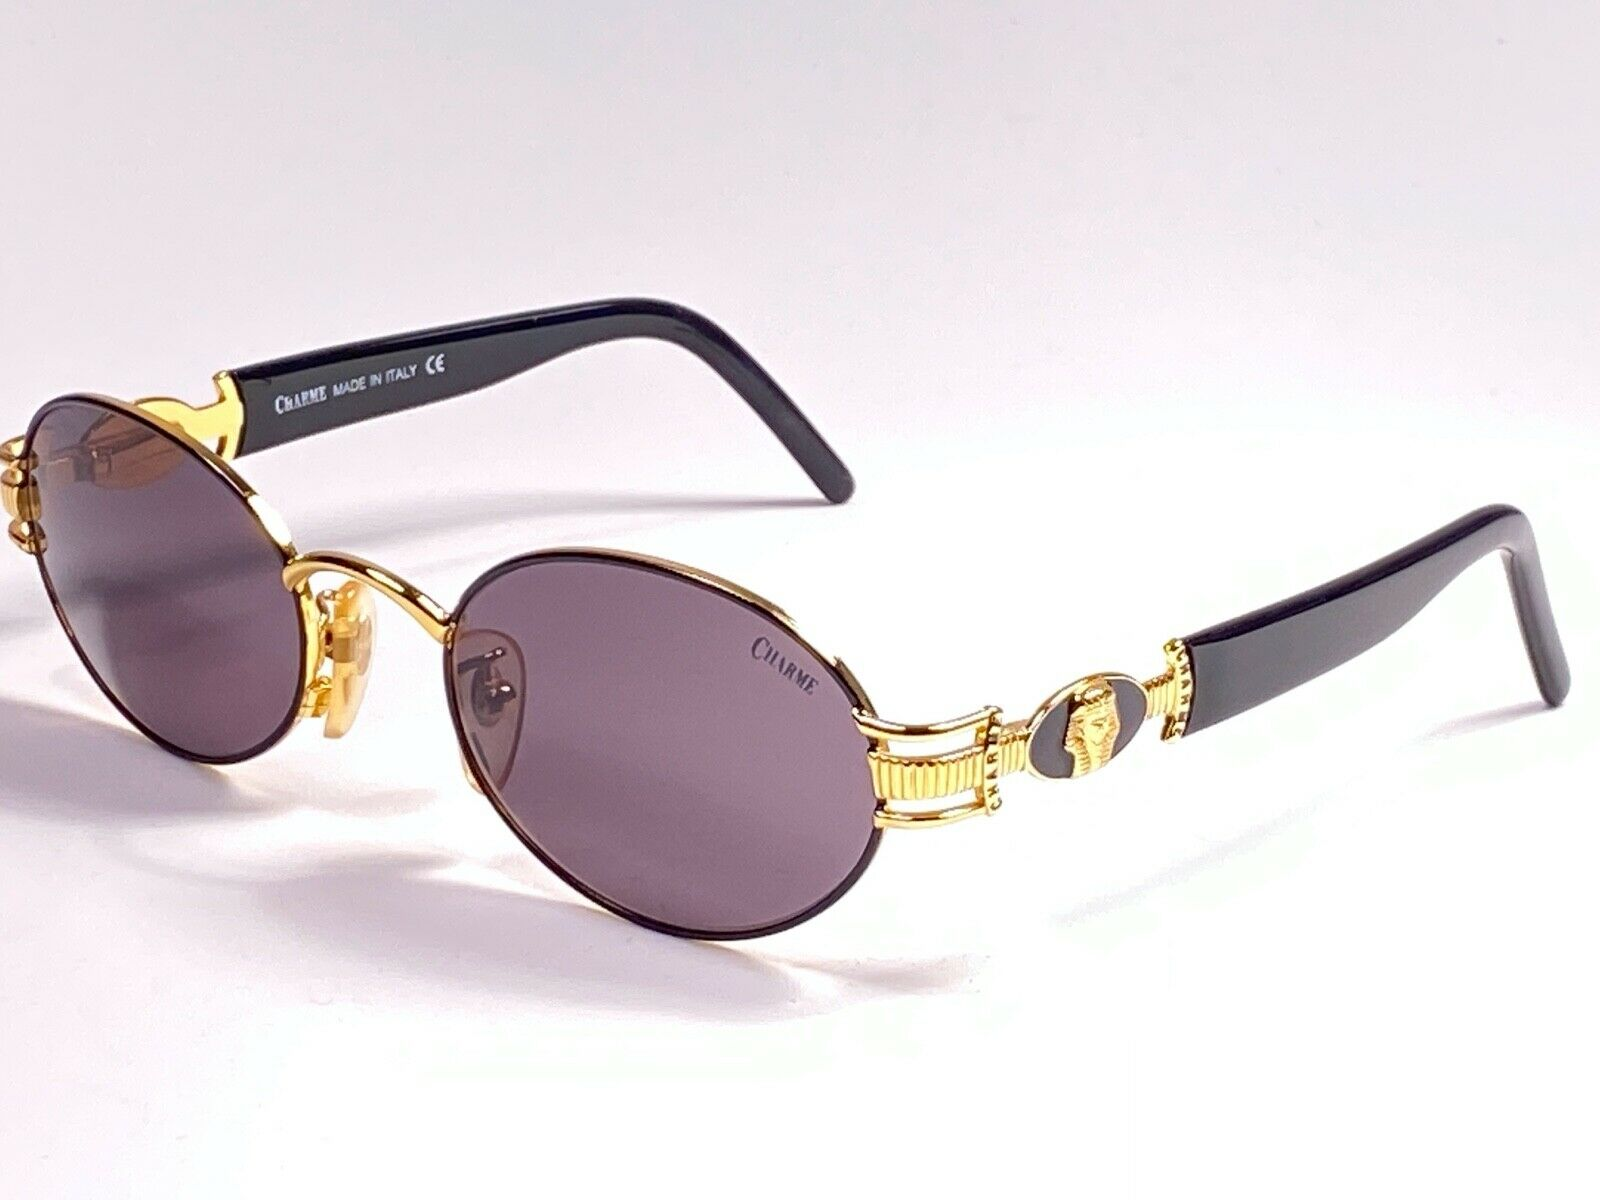 NEW VINTAGE CHARME 7540 OVAL BLACK & GOLD SUPER 1990'S MADE IN ITALY SUNGLASSES